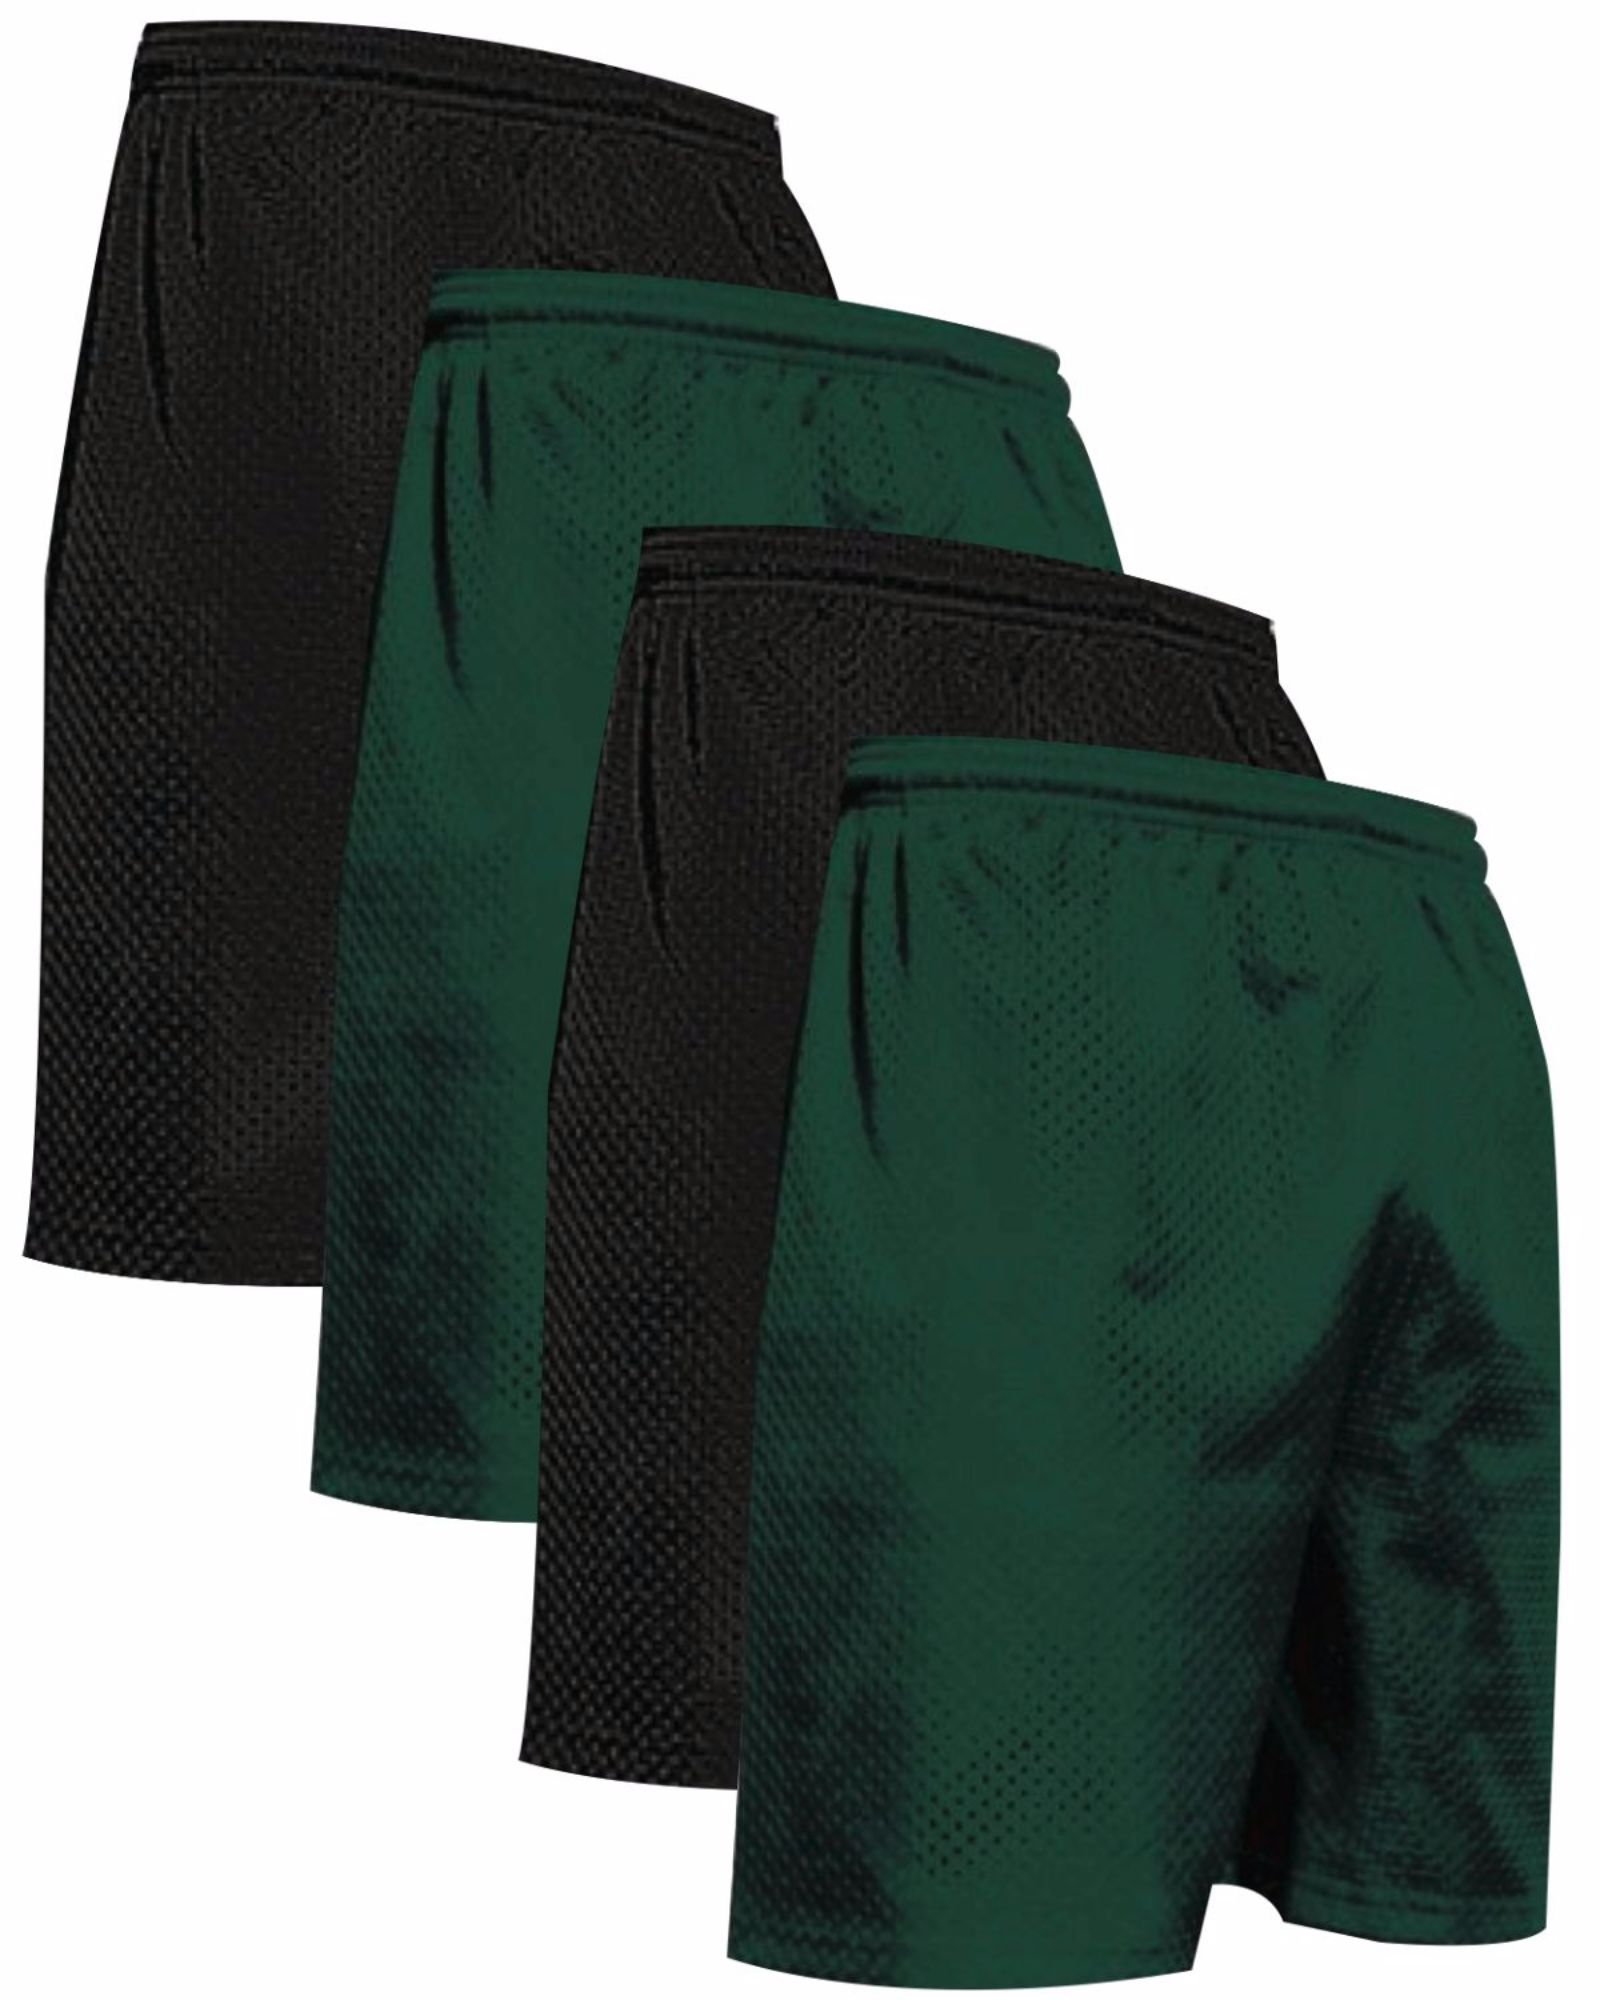 "VALUE PACK  > BUY 2 GET 2 FREE >  4 PACK > THE RAM BRAND > Men's  9"" Performance Pro Mesh Gym Champ Shorts (XS-4XL) $10 S/H is on the 1st Pack only. In this Pack: (4XL)(2Black/2Forest)"